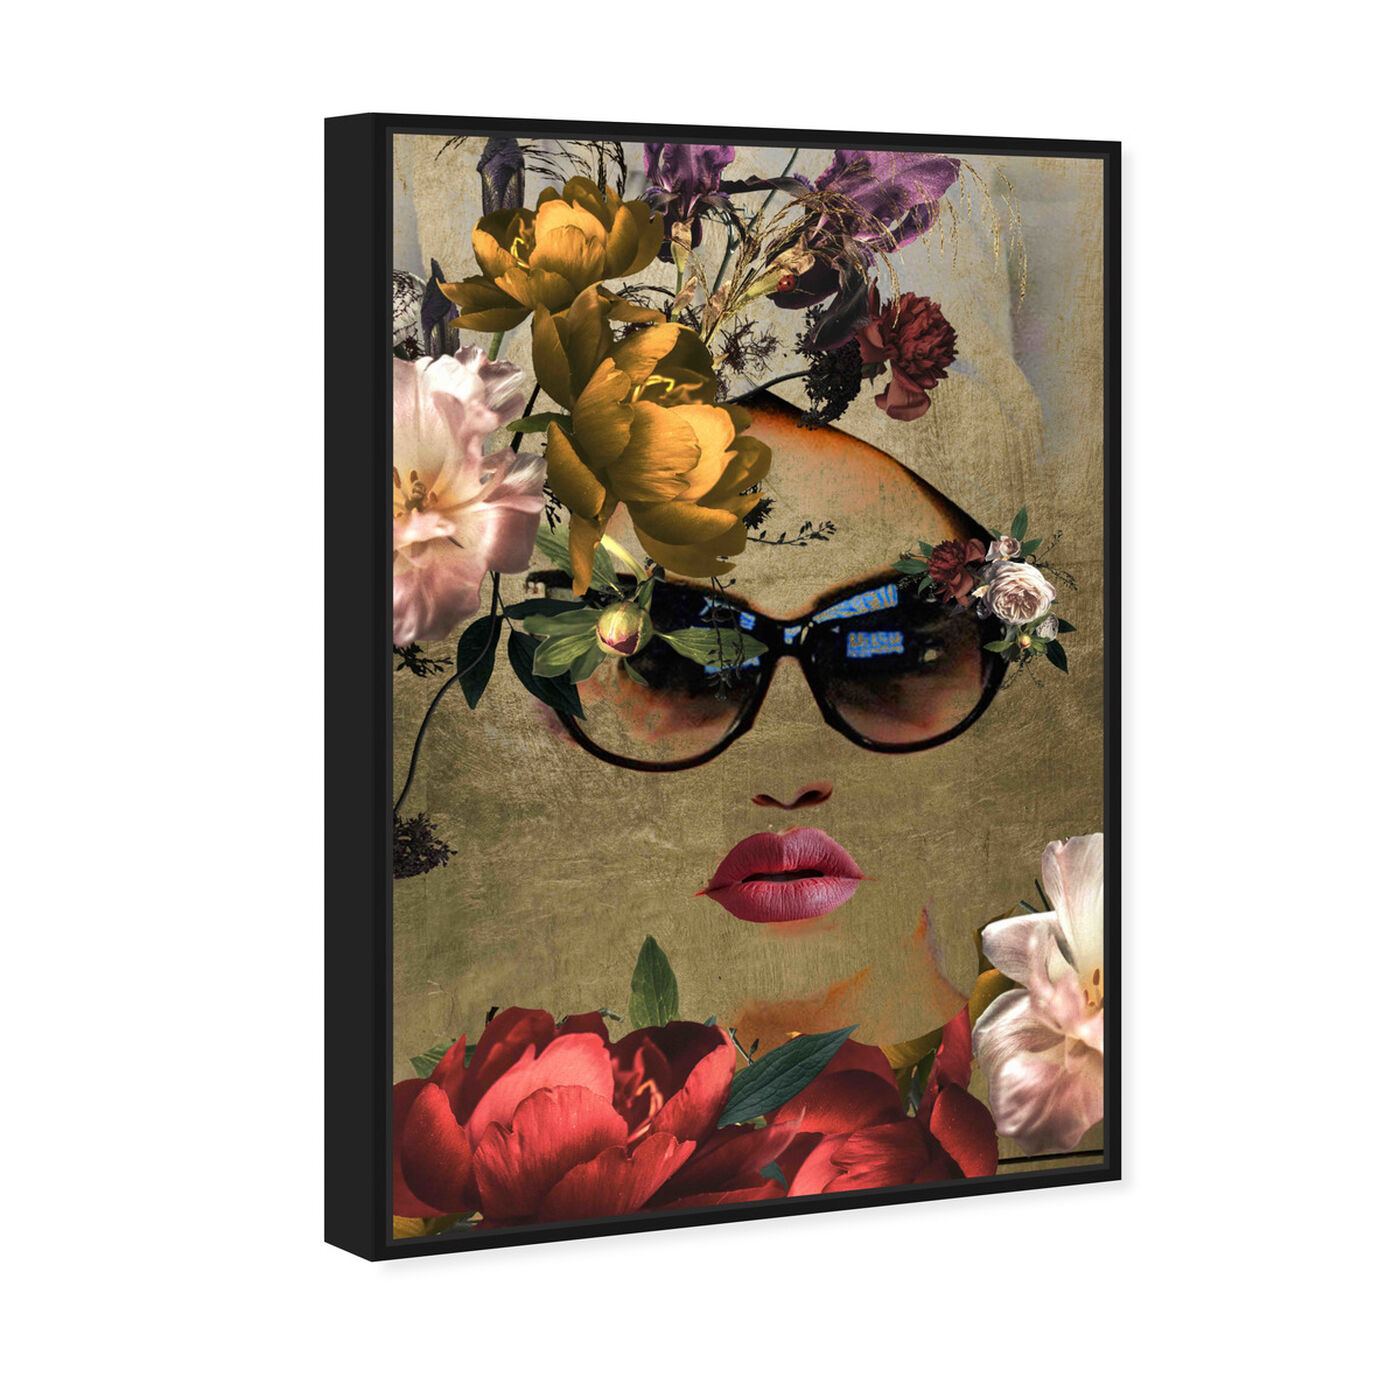 Angled view of Mambo Queen featuring fashion and glam and lips art.